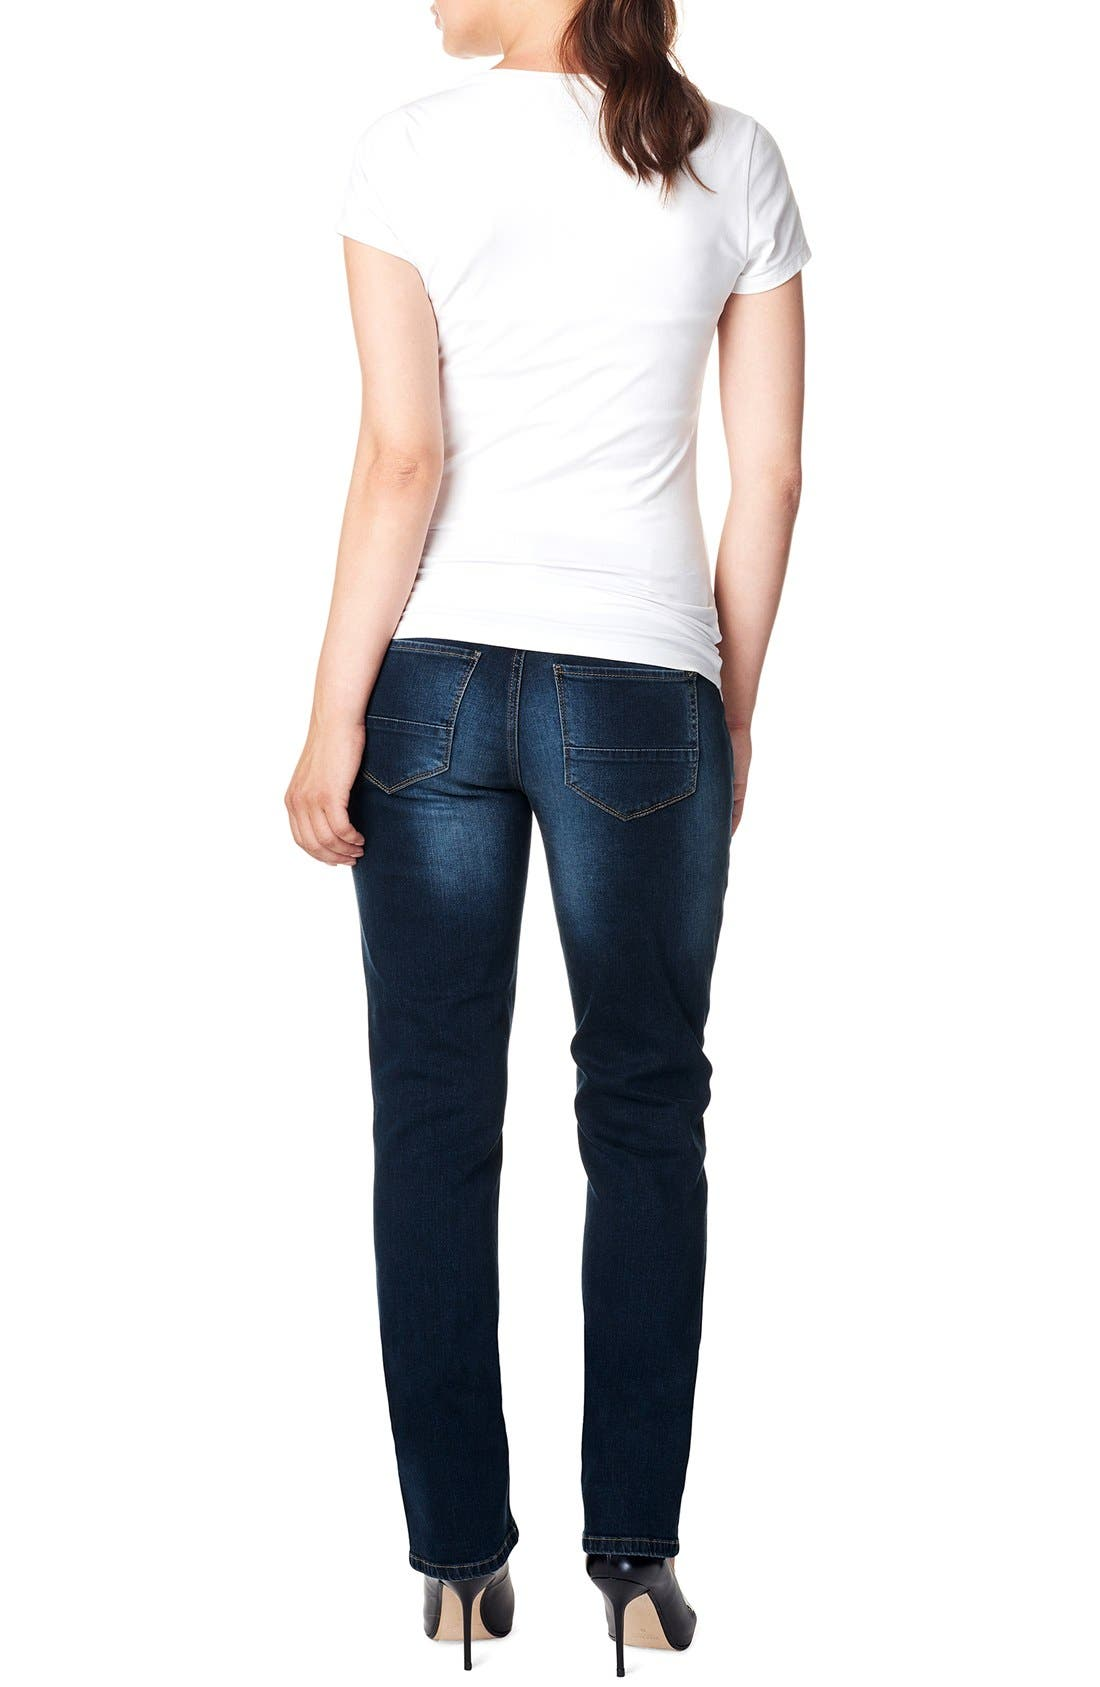 'Mena Comfort' Over the Belly Straight Leg Maternity Jeans,                             Alternate thumbnail 6, color,                             DARK STONE WASH